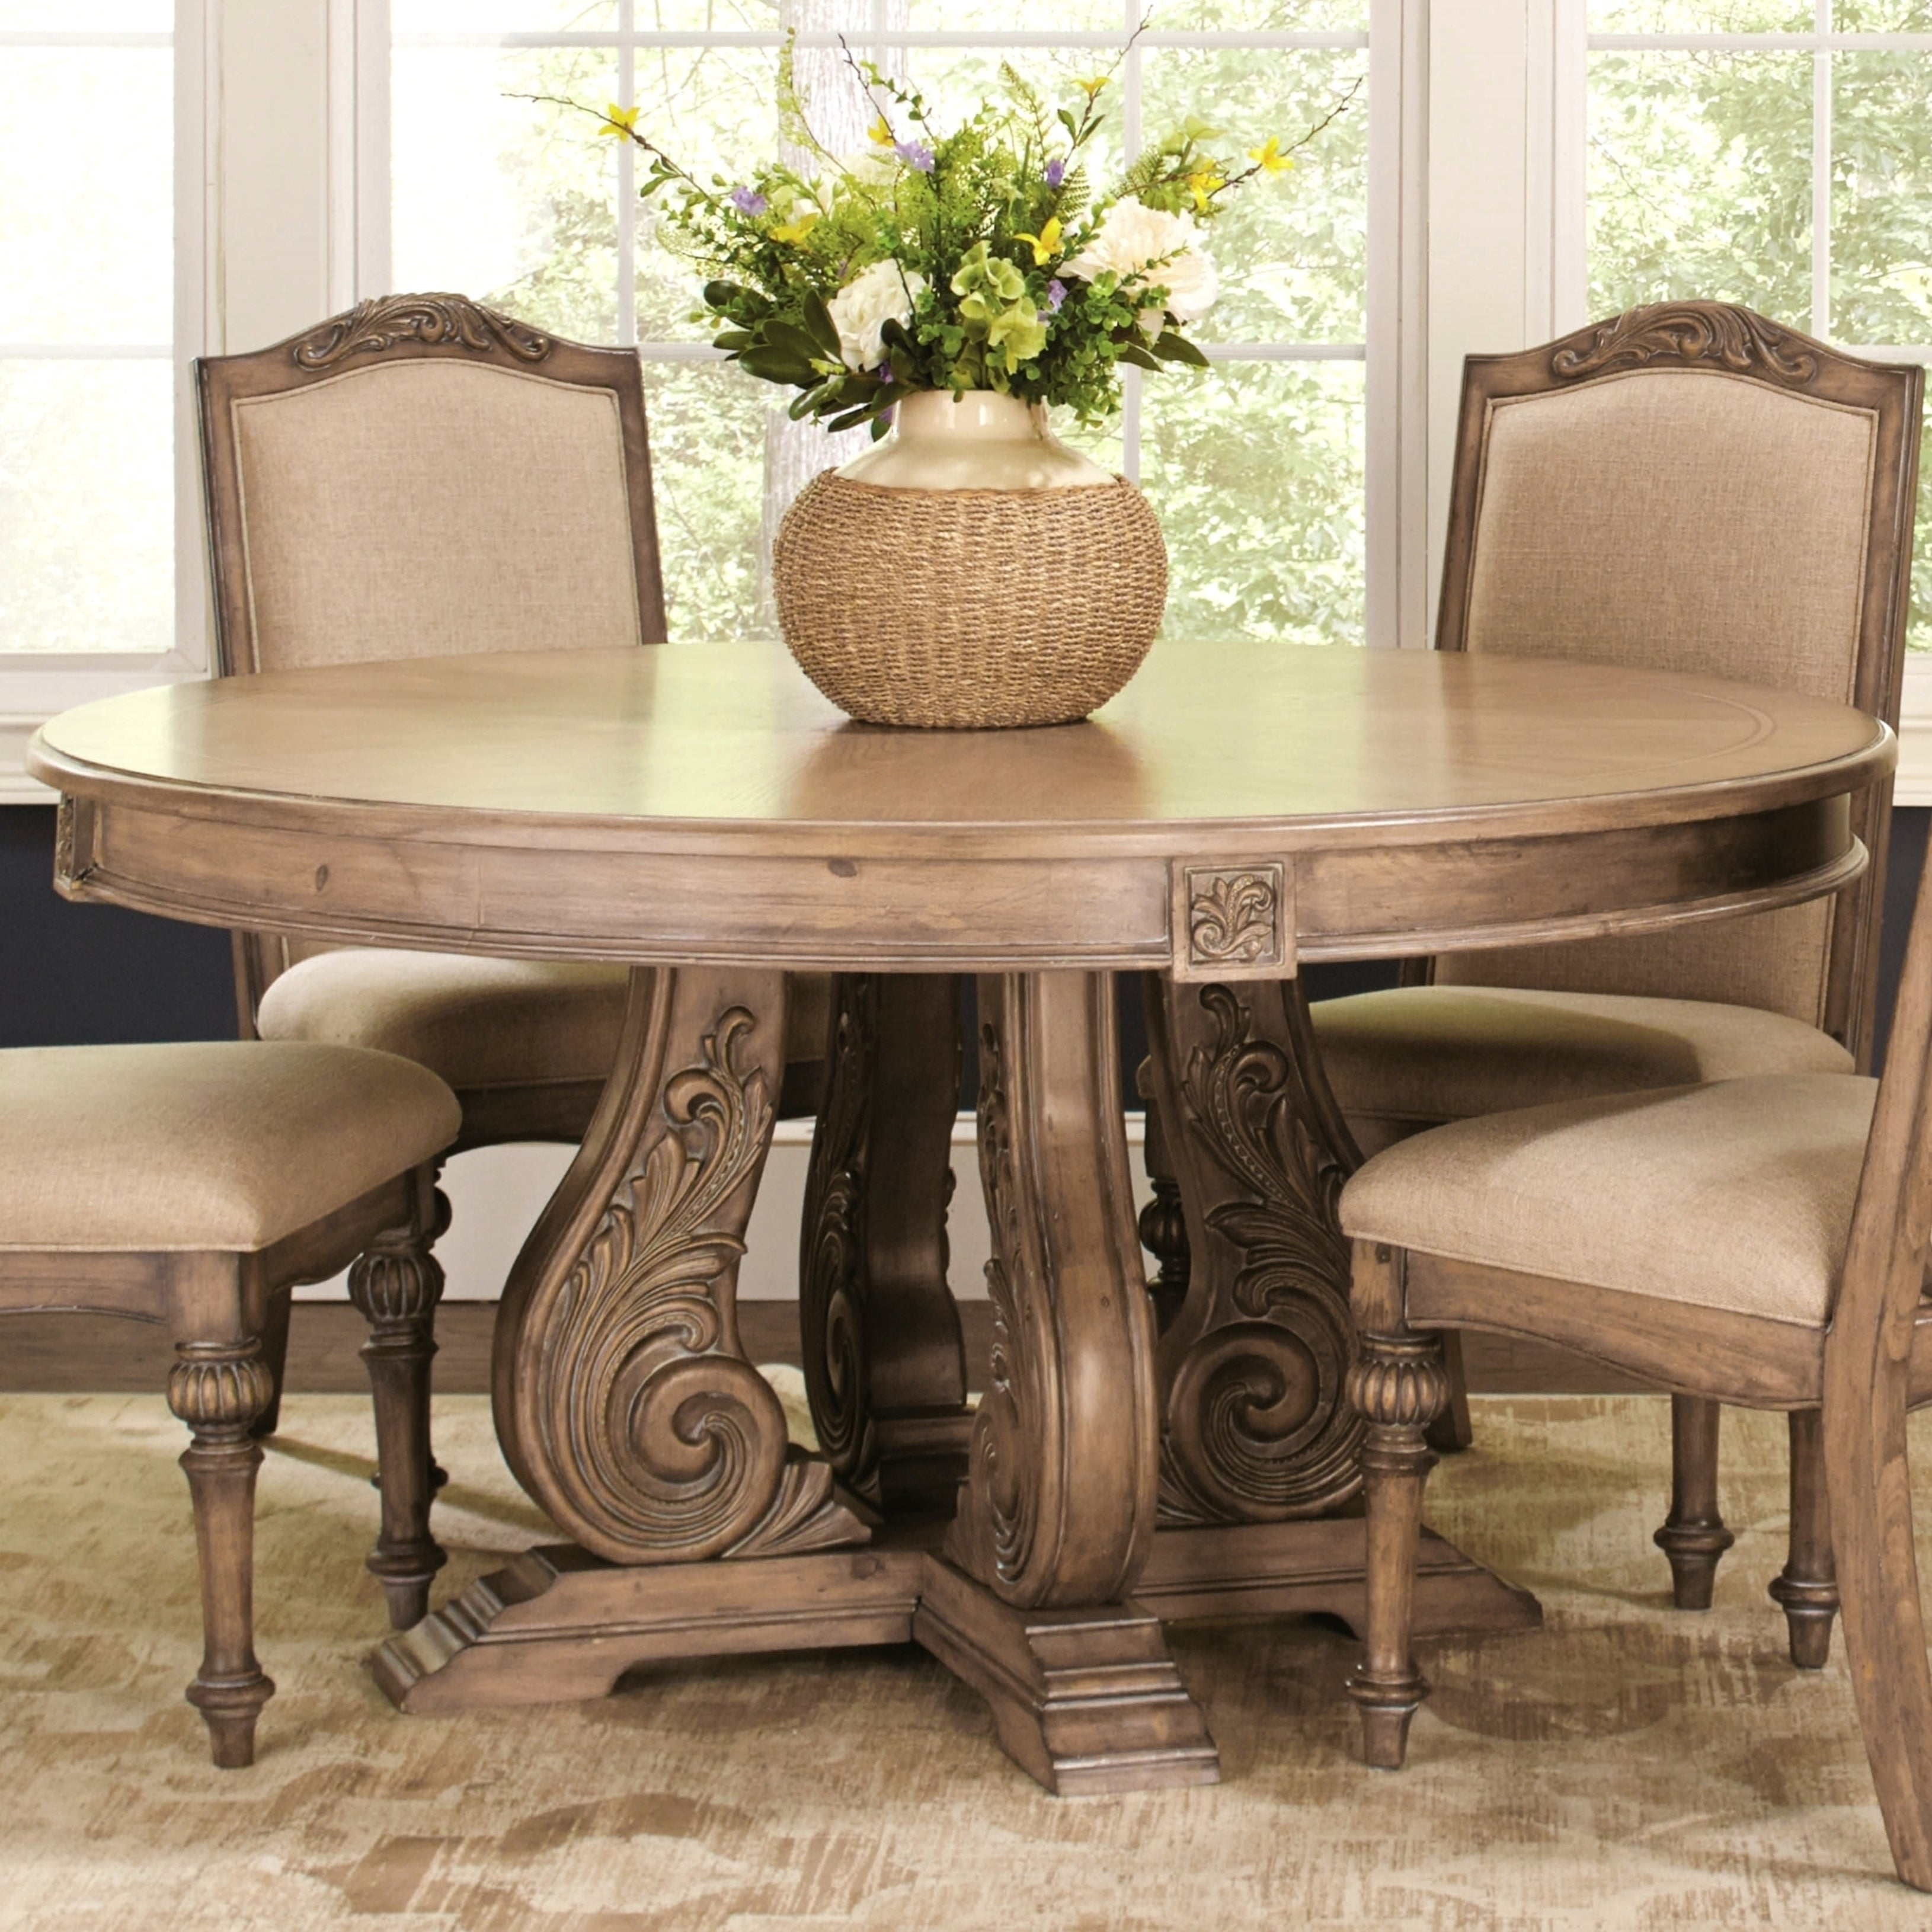 La Bauhinia French Antique Carved Wood Design Round Dining Table - Beige